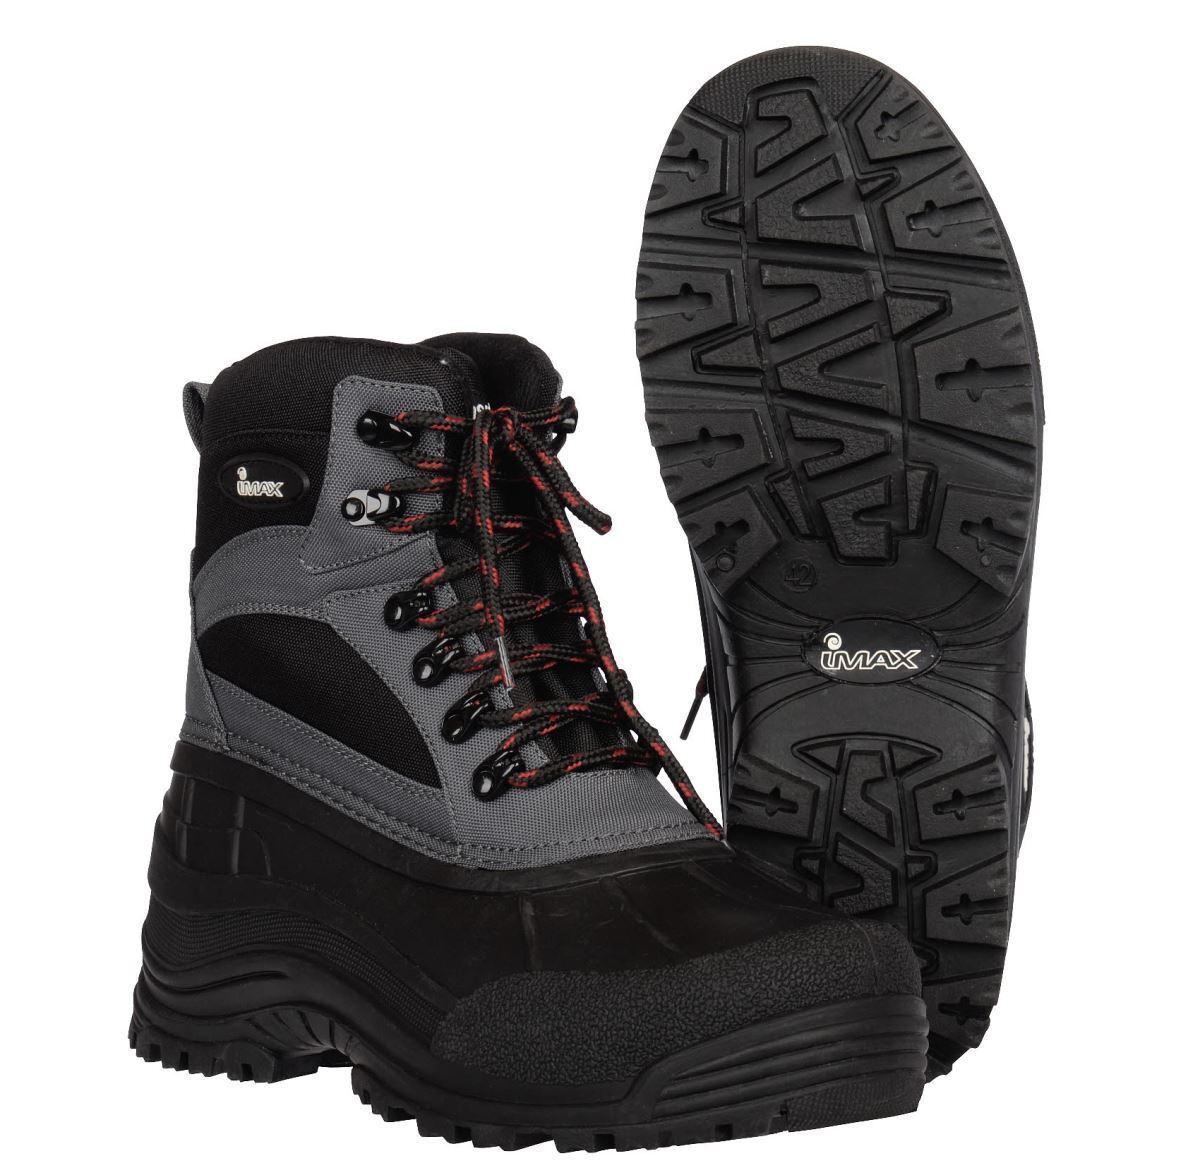 Imax Sea Boot  - uk7  hottest new styles